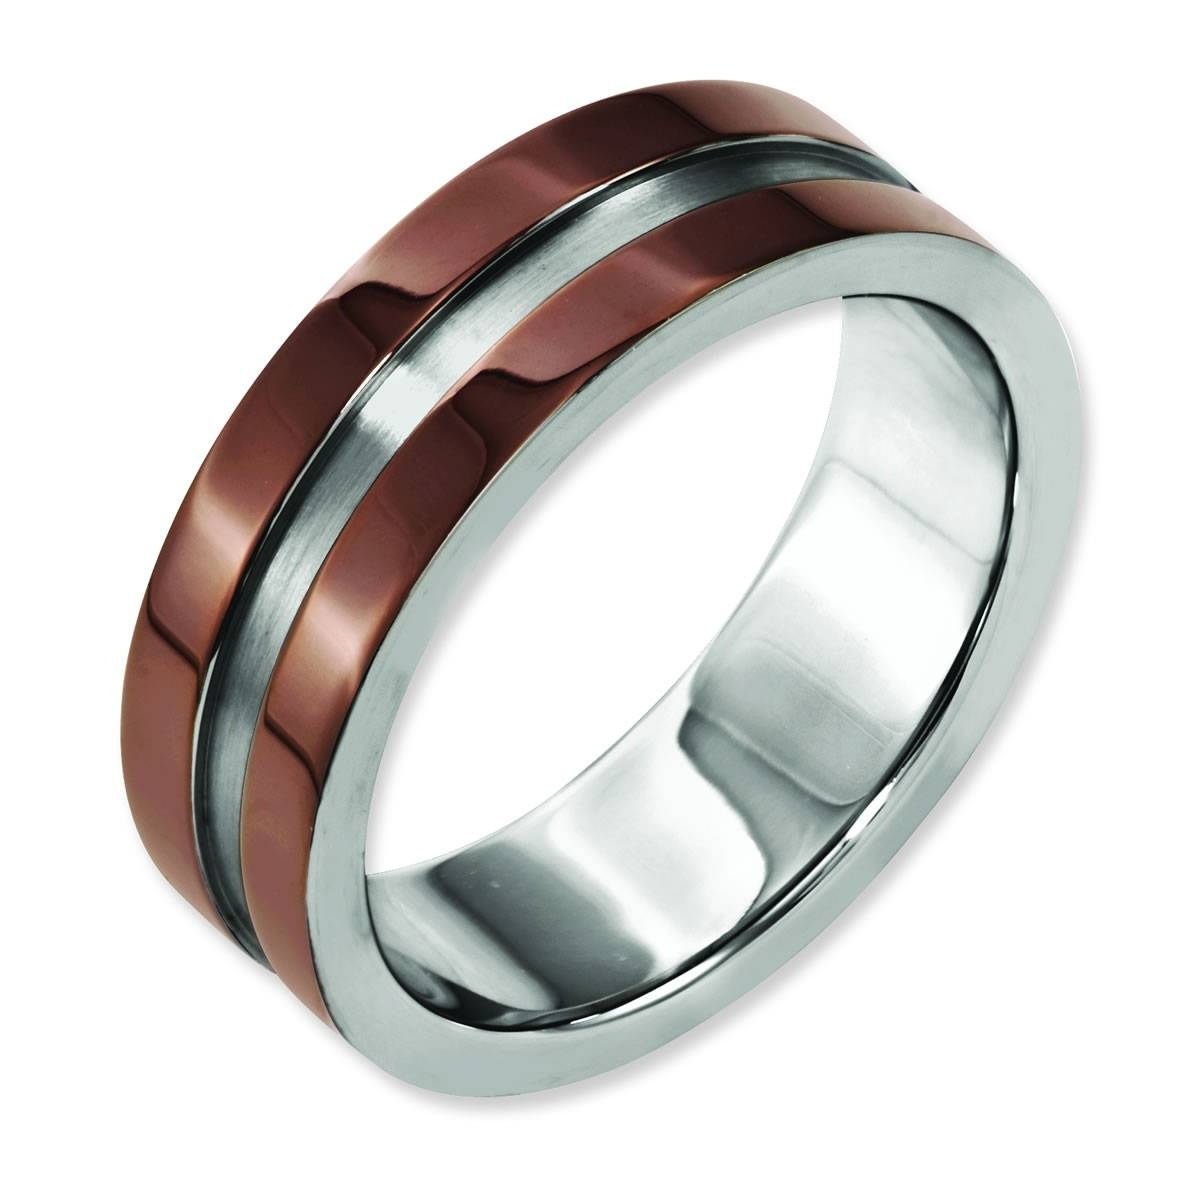 Titanium Grooved 8Mm Chocolate Plated Men's Wedding Band | Samuels For Chocolate Wedding Bands (View 15 of 15)